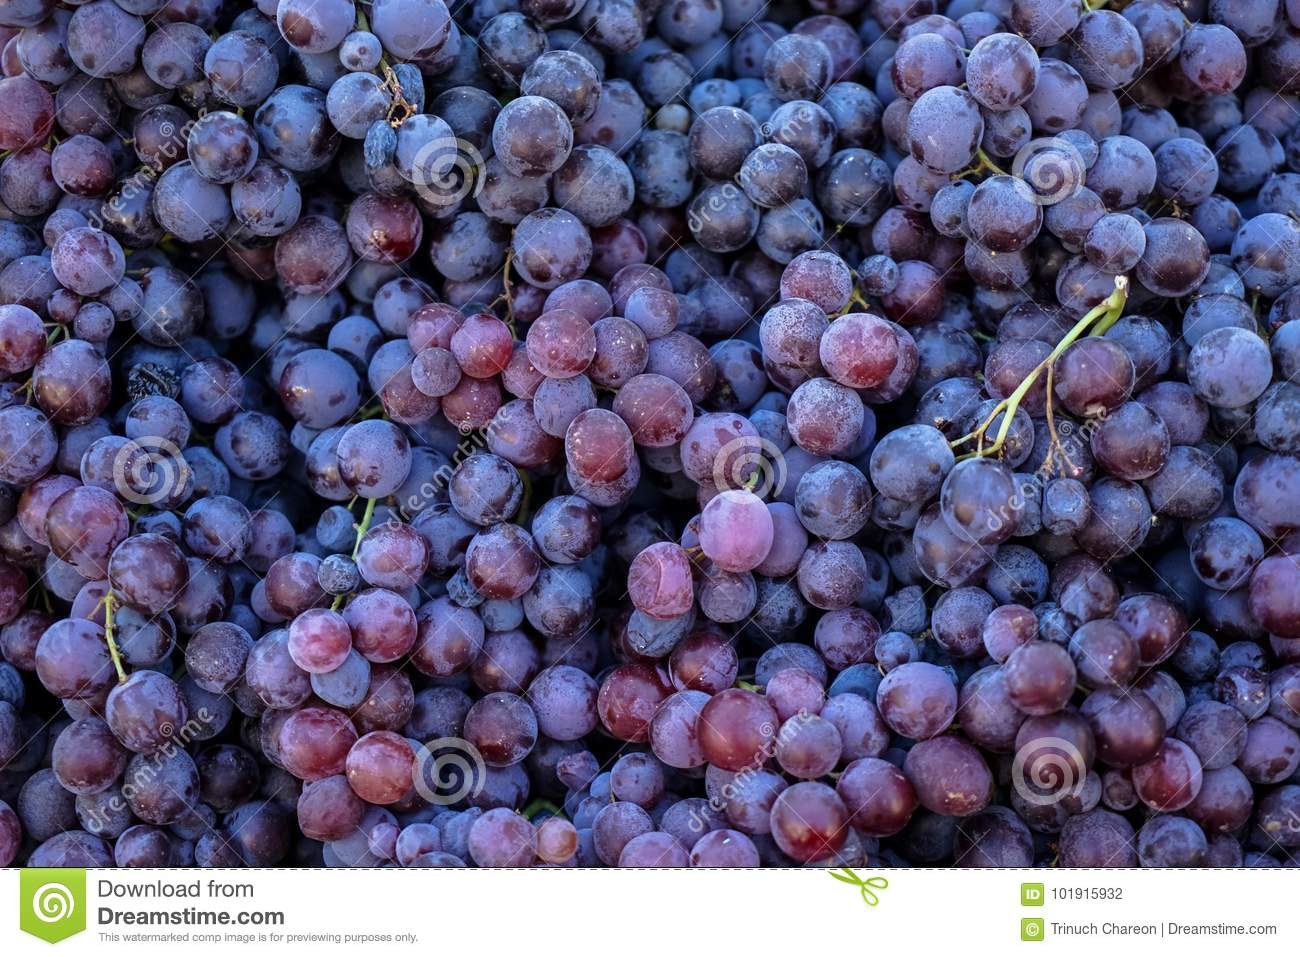 Piles of delicious fresh juicy seedless red grapes background in city fruit market